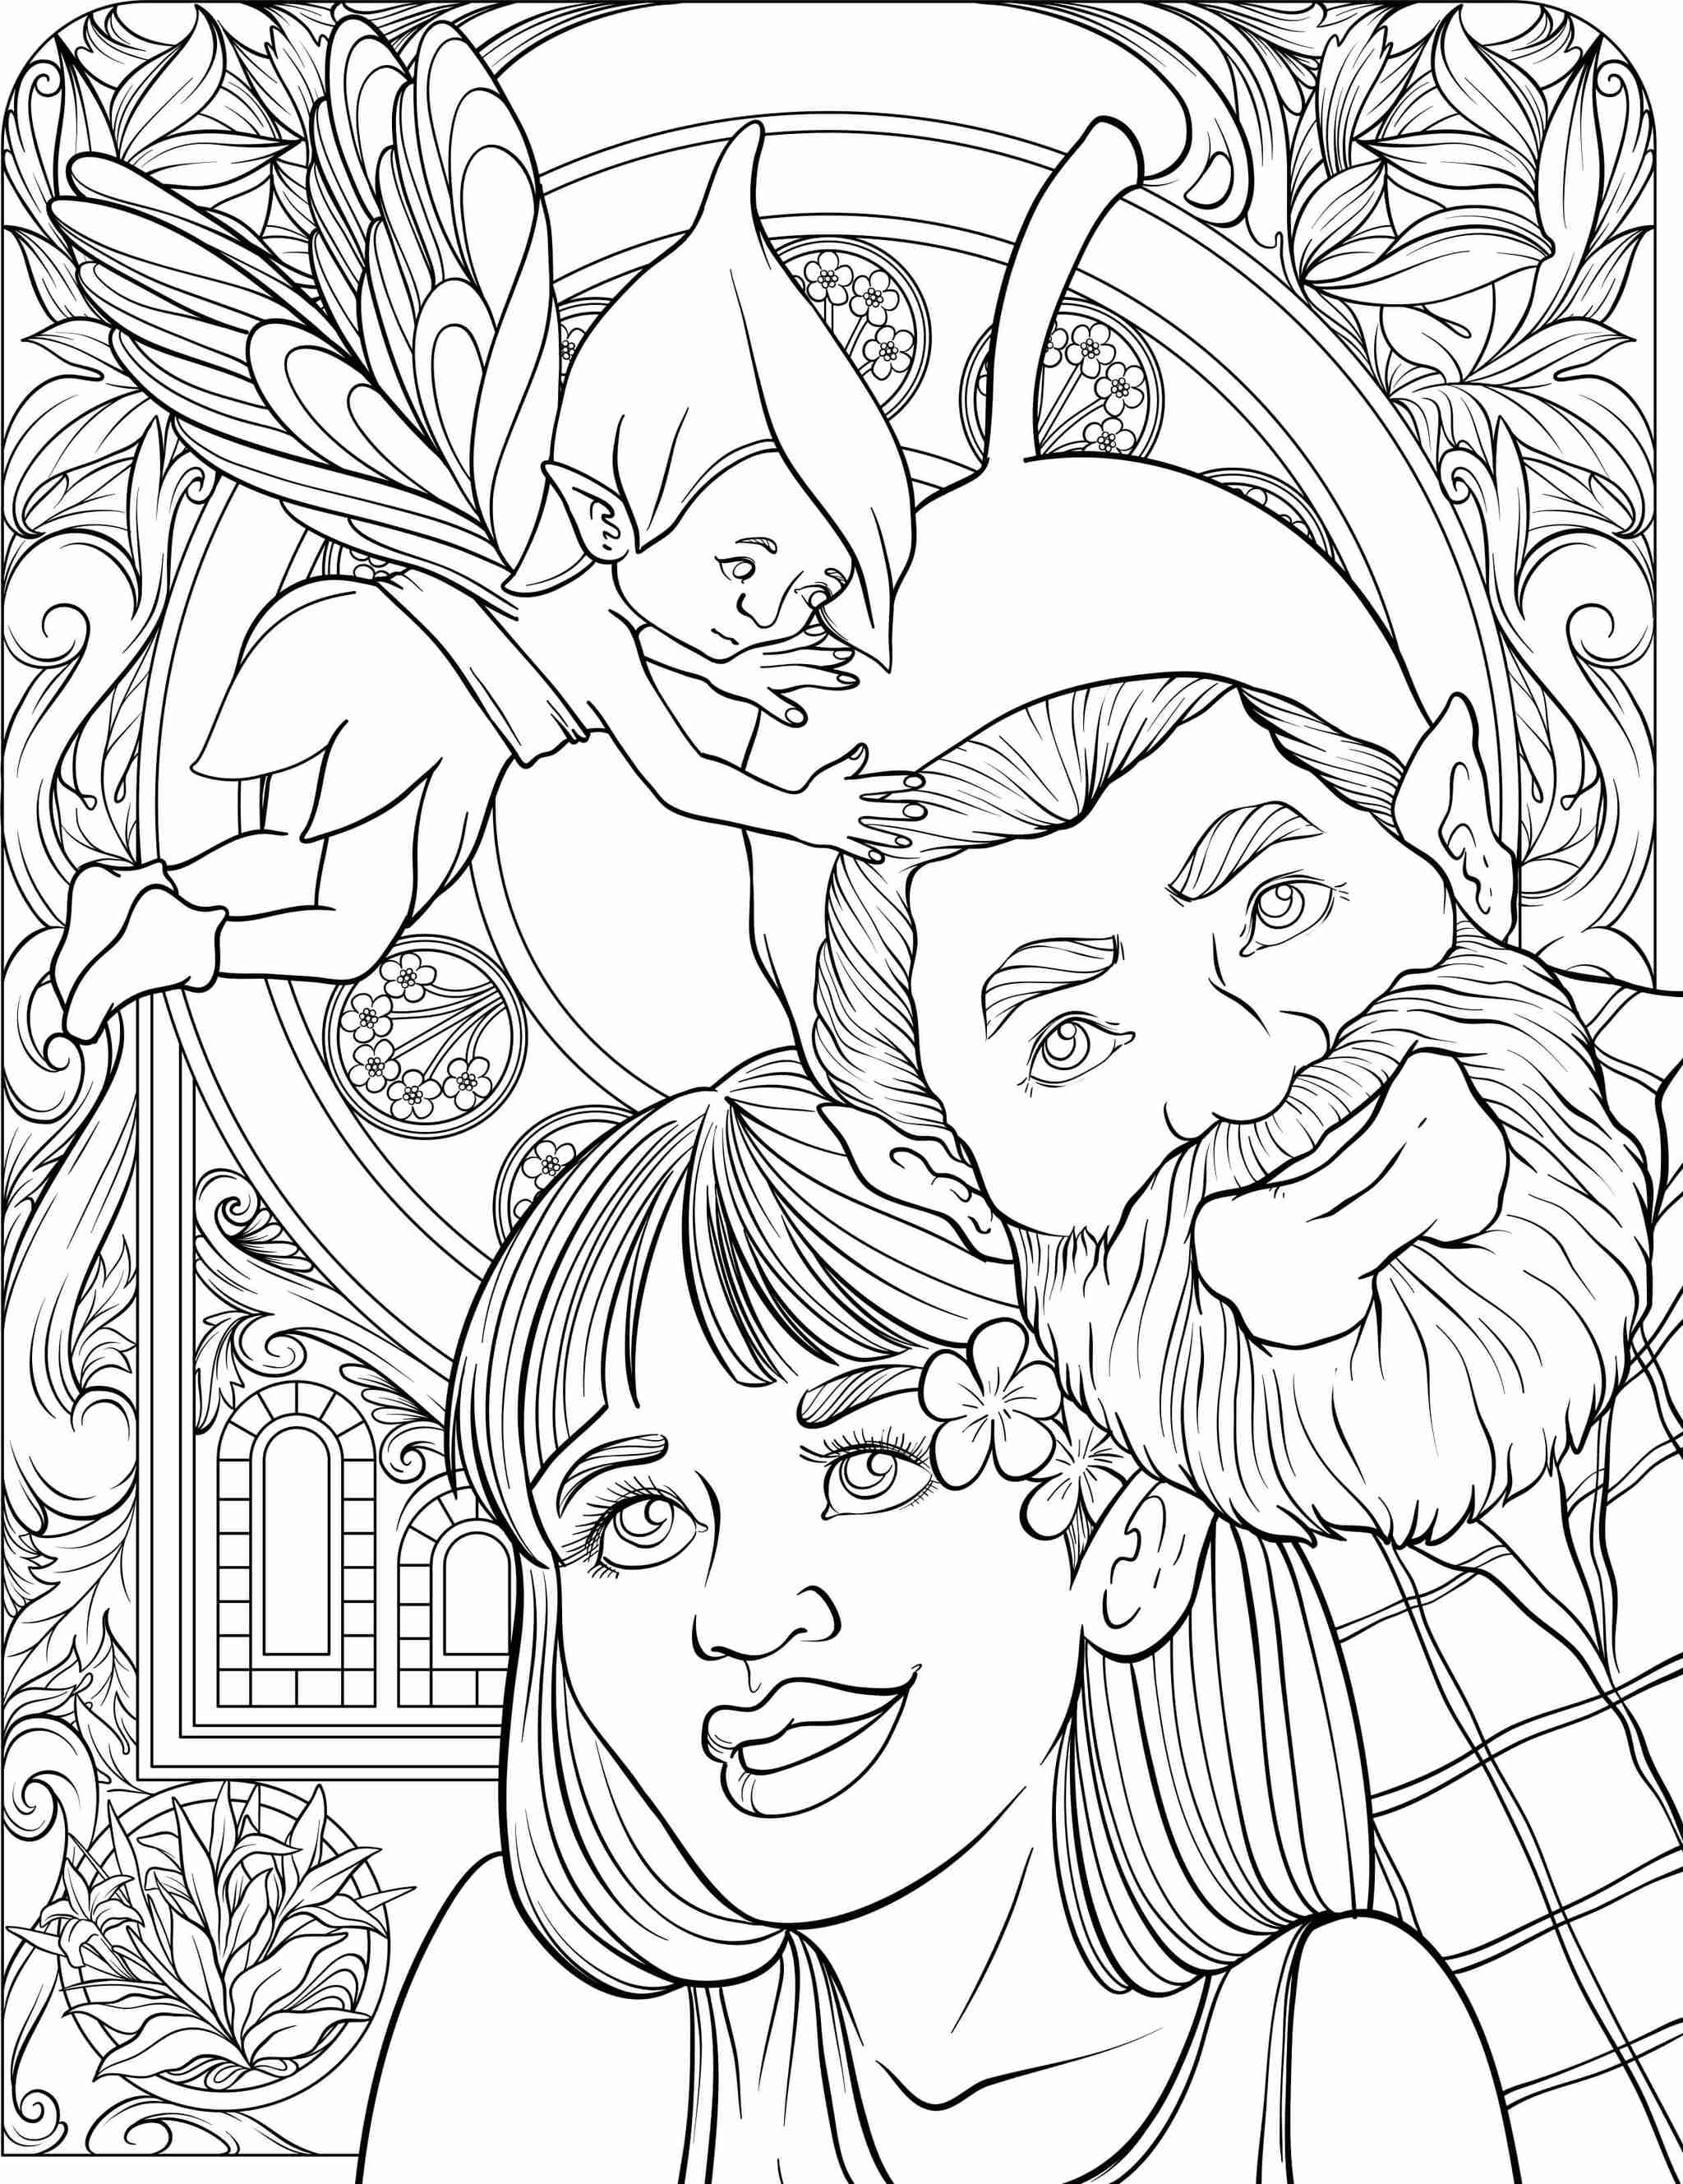 ColorIt Coloring Books Group Freebie 02-15-21